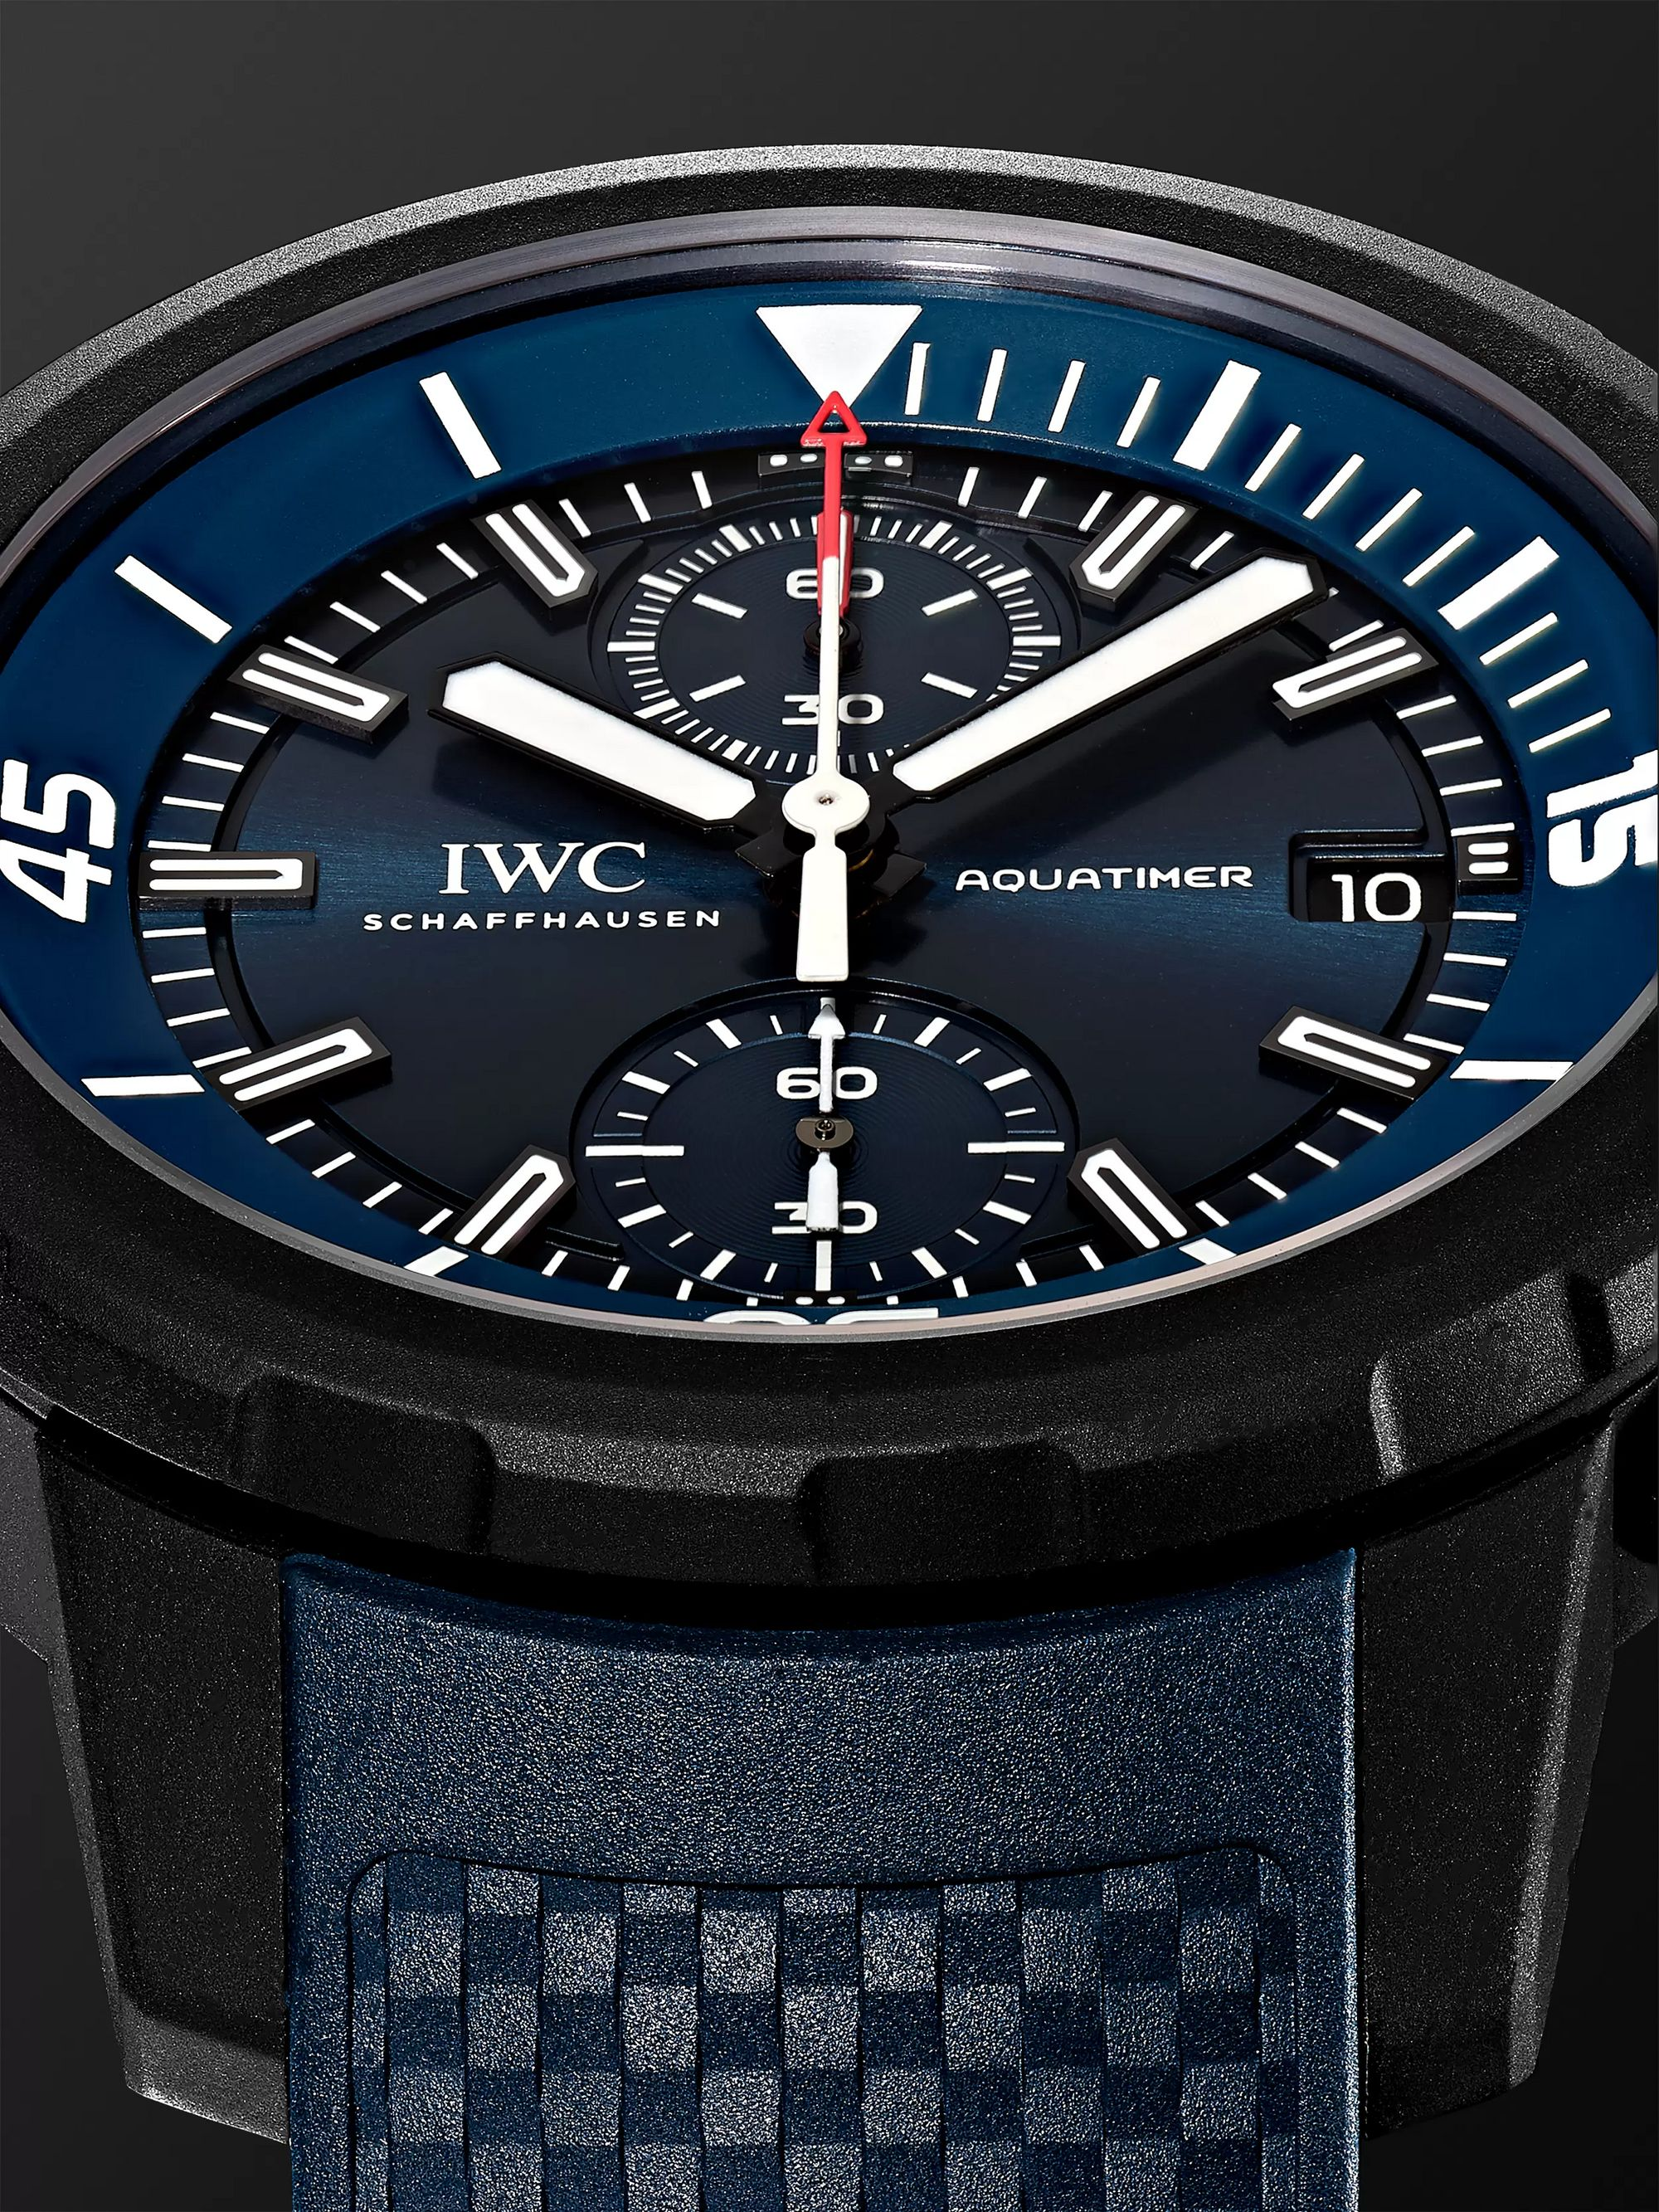 IWC SCHAFFHAUSEN Aquatimer Chronograph Laureus Sport For Good Limited Edition Chronograph 45mm Stainless Steel And Rubber Watch, Ref. No.